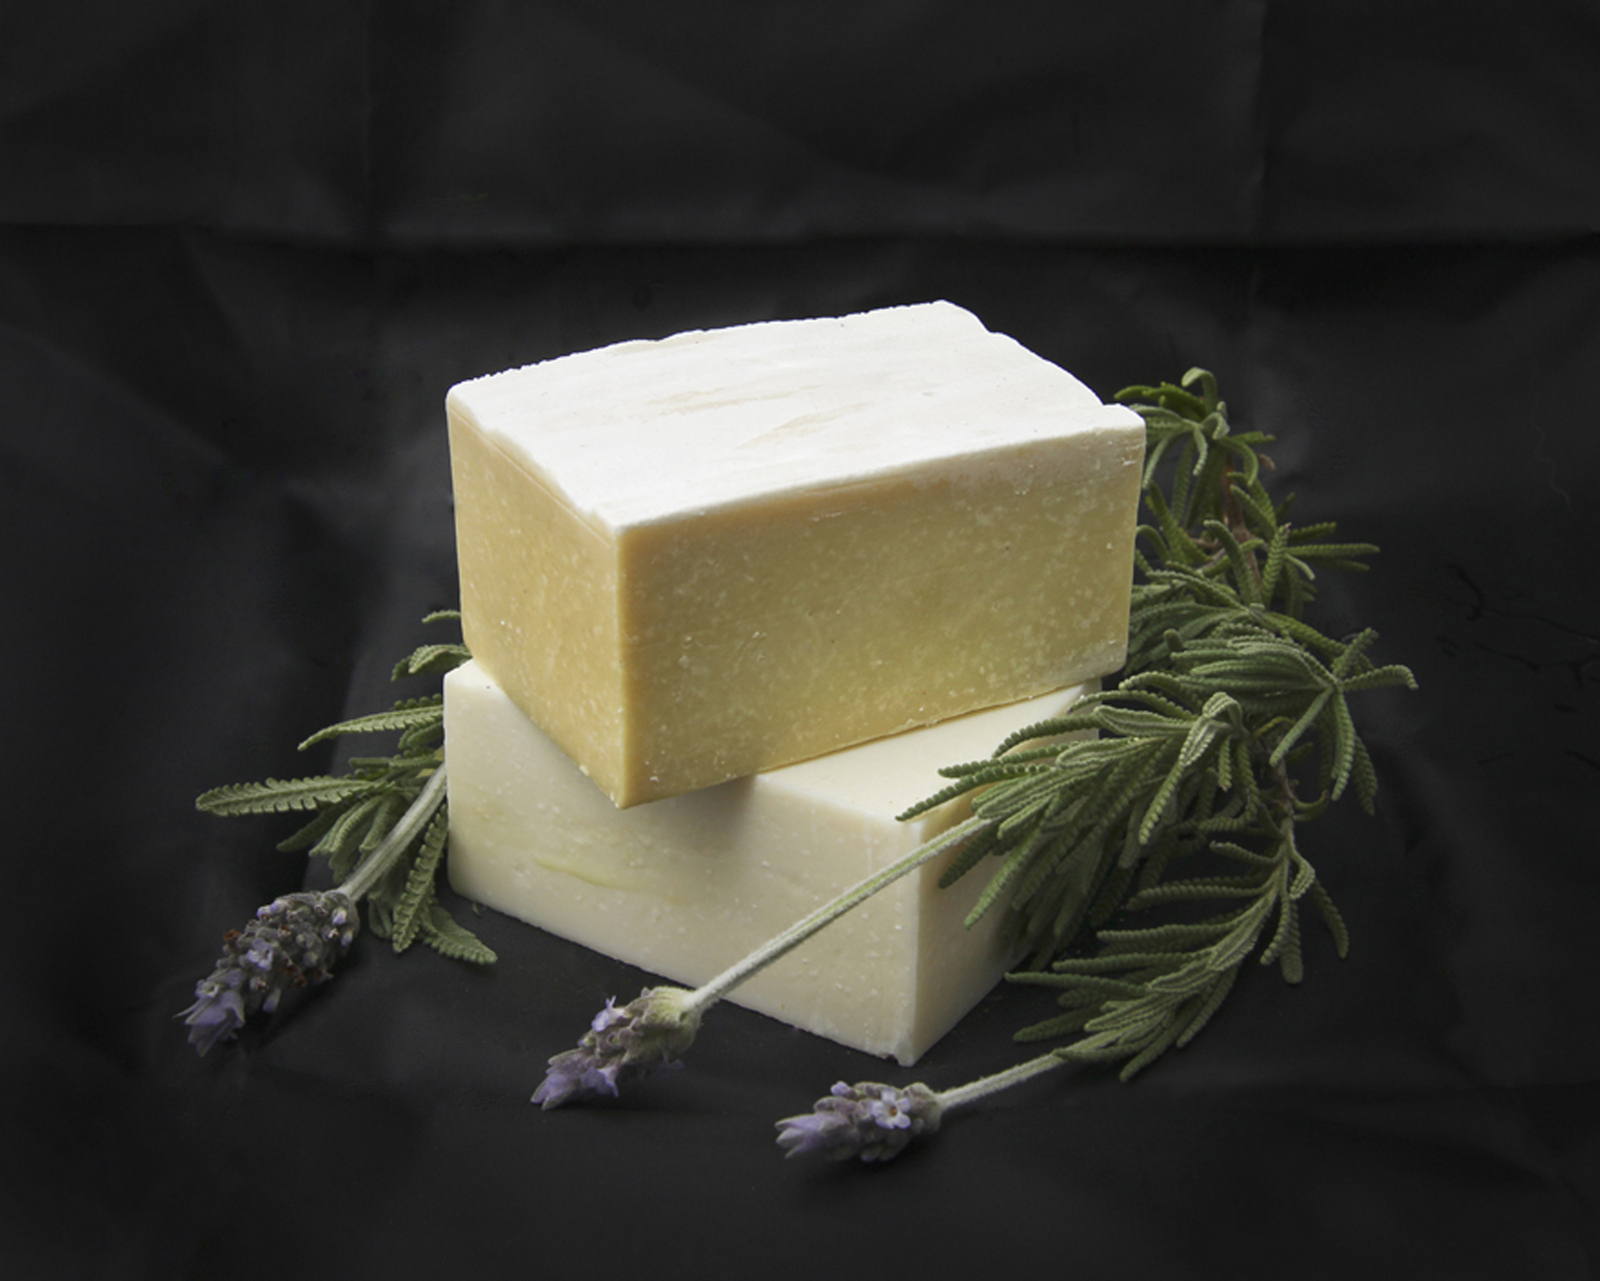 Olive & Ash Goats Milk and Lavender Olive Oil Soap